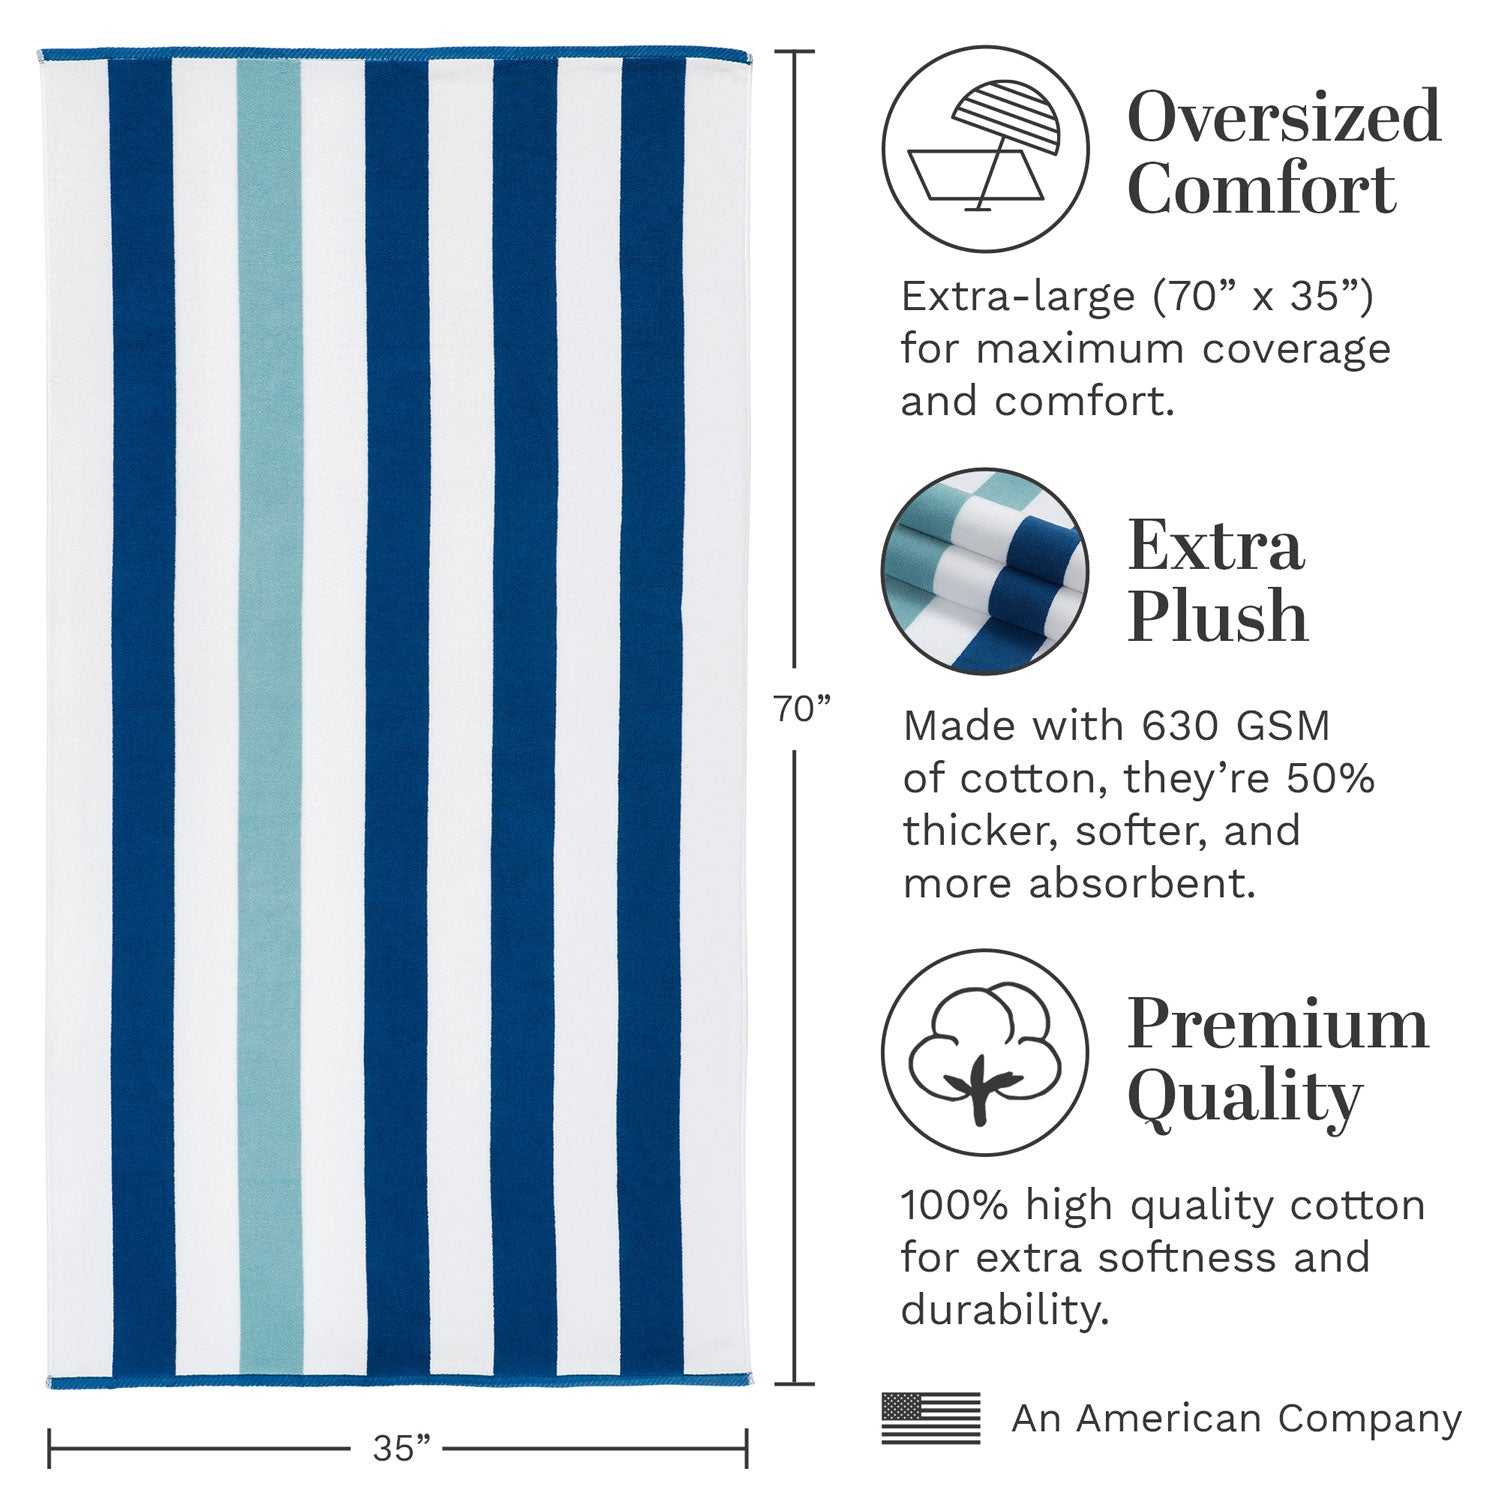 Infographic of our blue and teal cabana beach towel highlighting that it's extra plush, premium quality, and oversized.